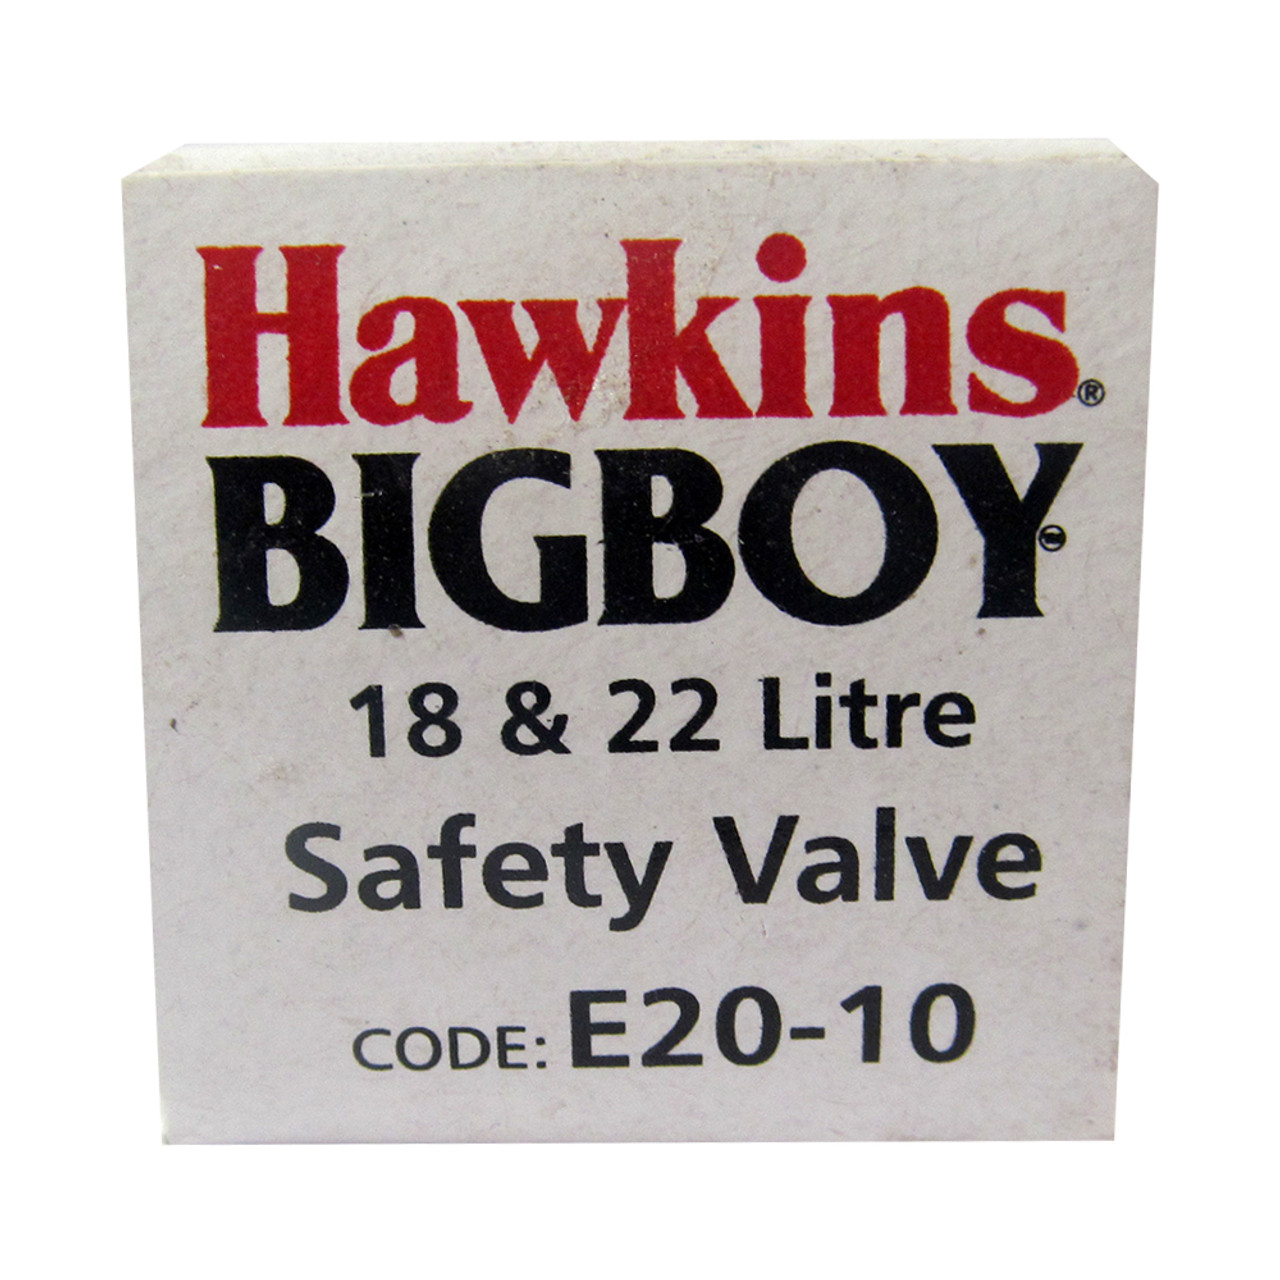 Hawkins BIGBOY E20-10 Safety Valve for 18 Litre and 22 Litre Pressure Cookers - Image 1